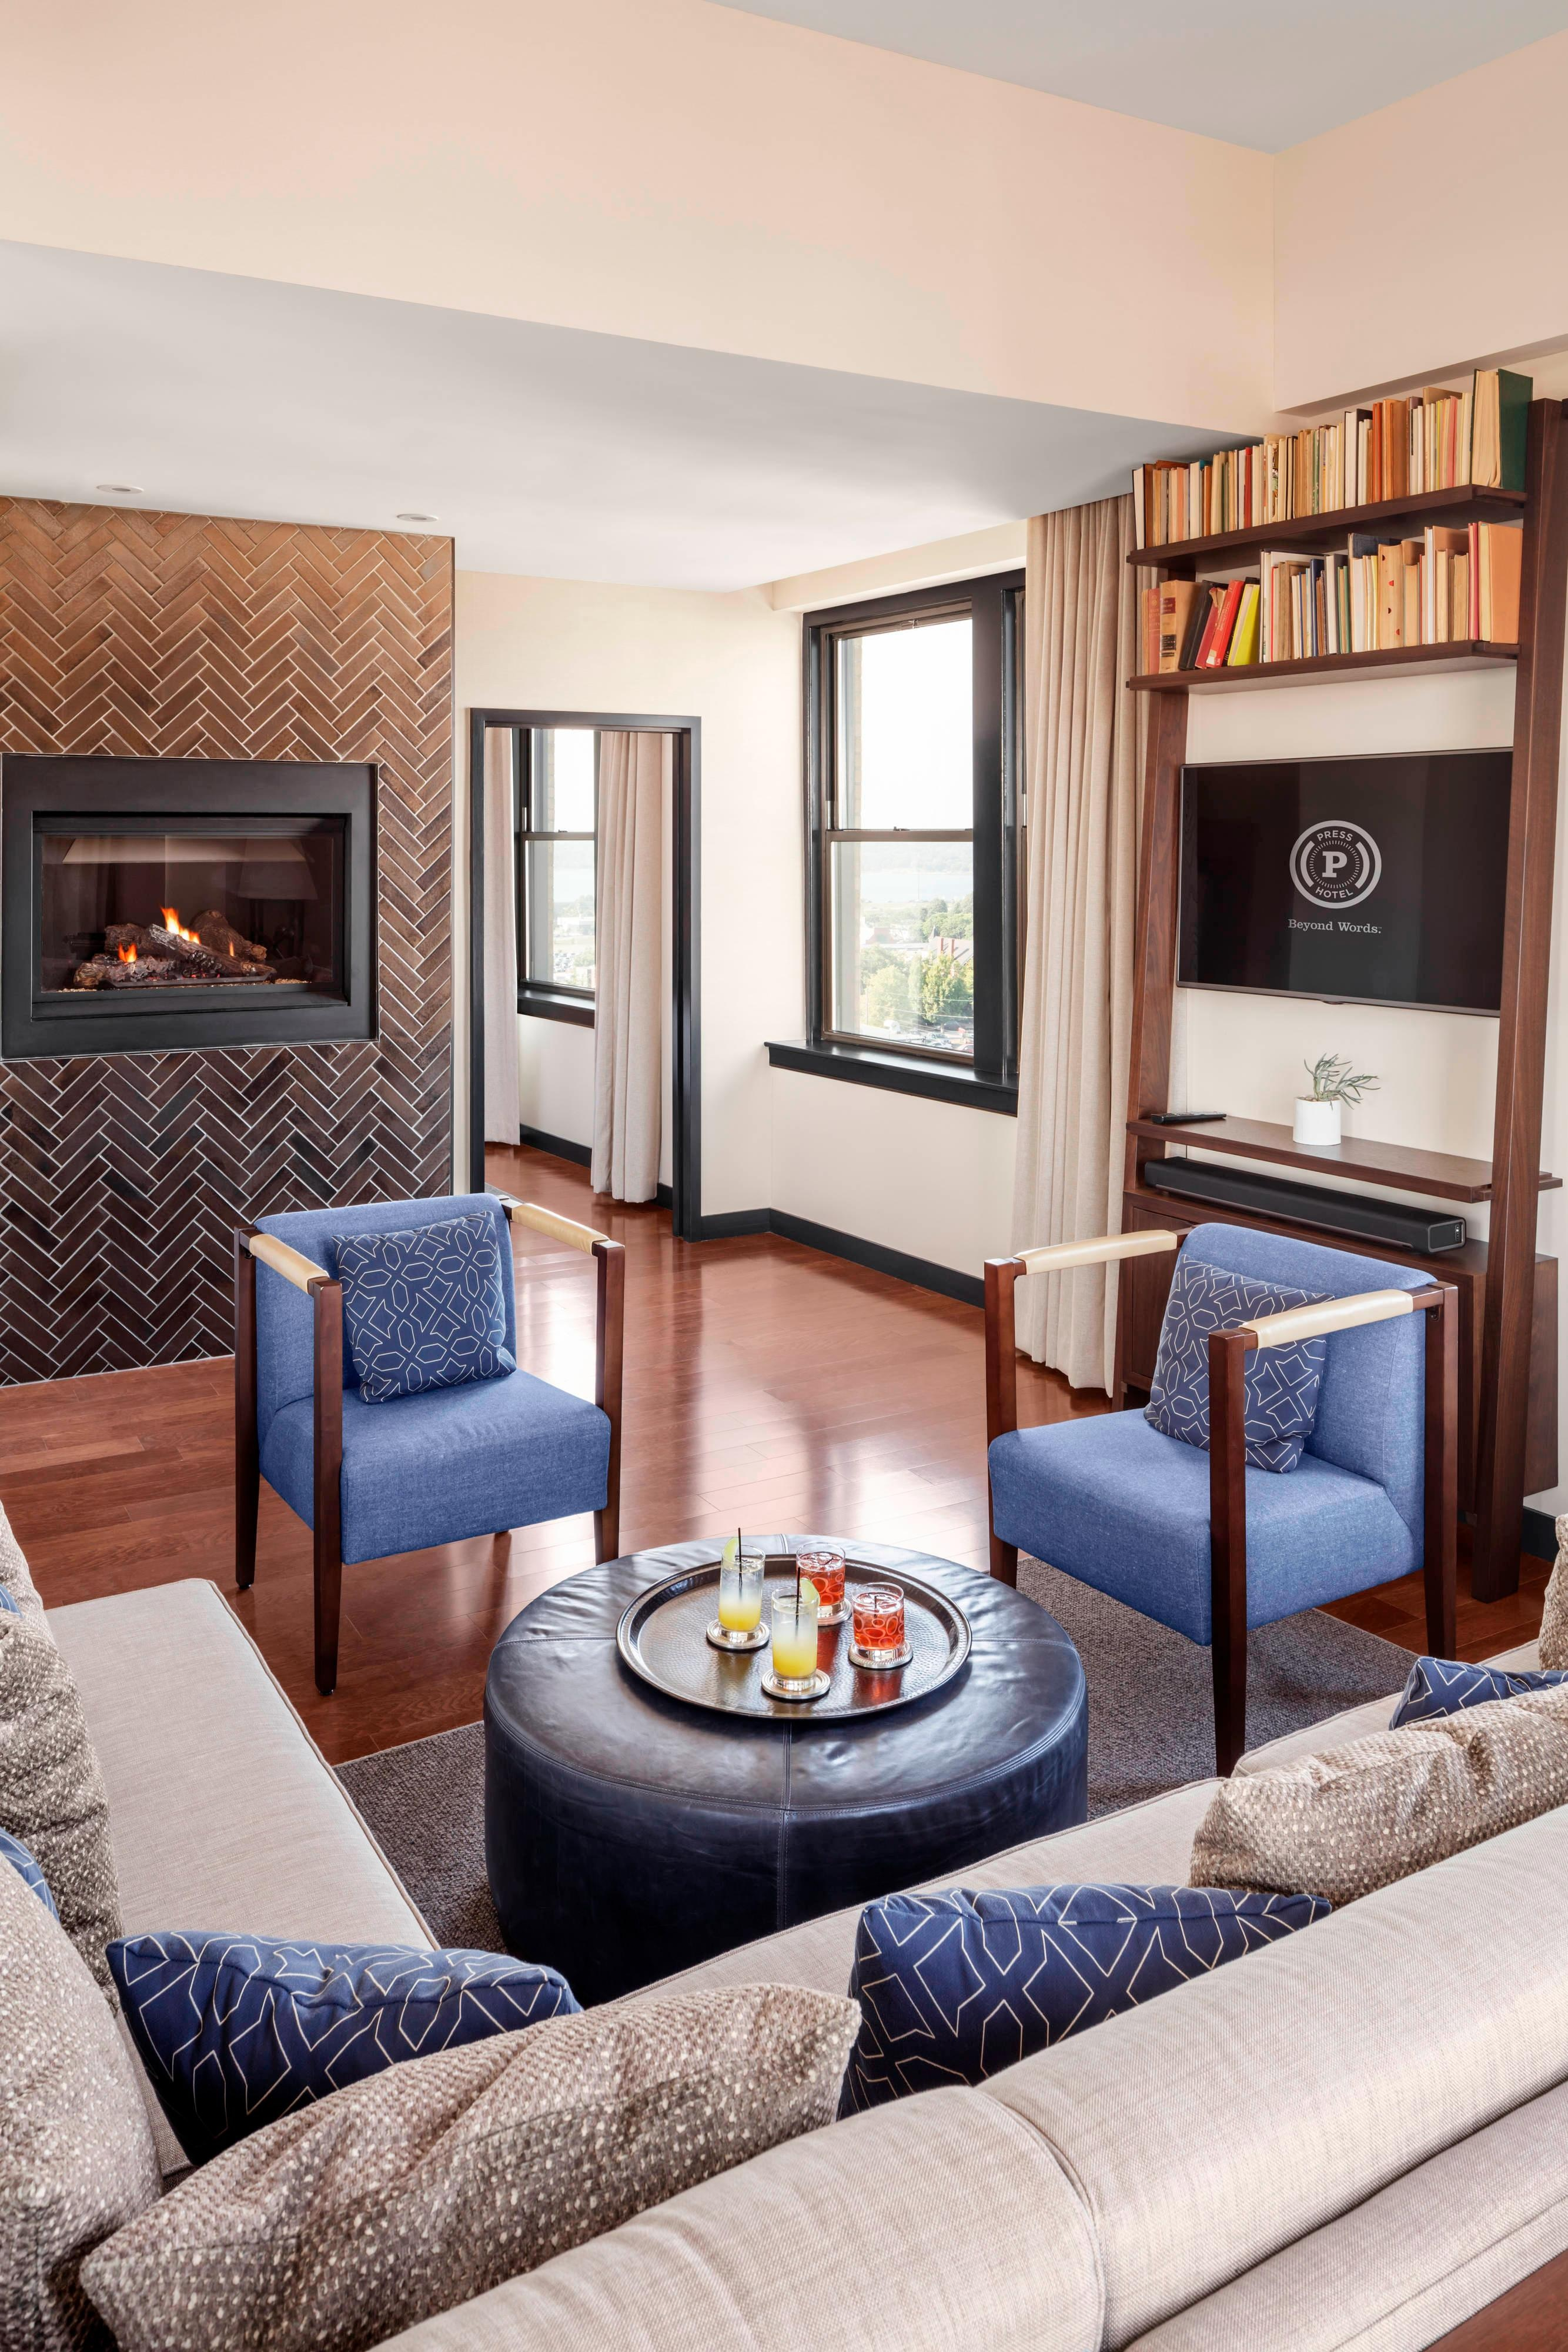 The Living Room of the Penthouse Suite with Fireplace